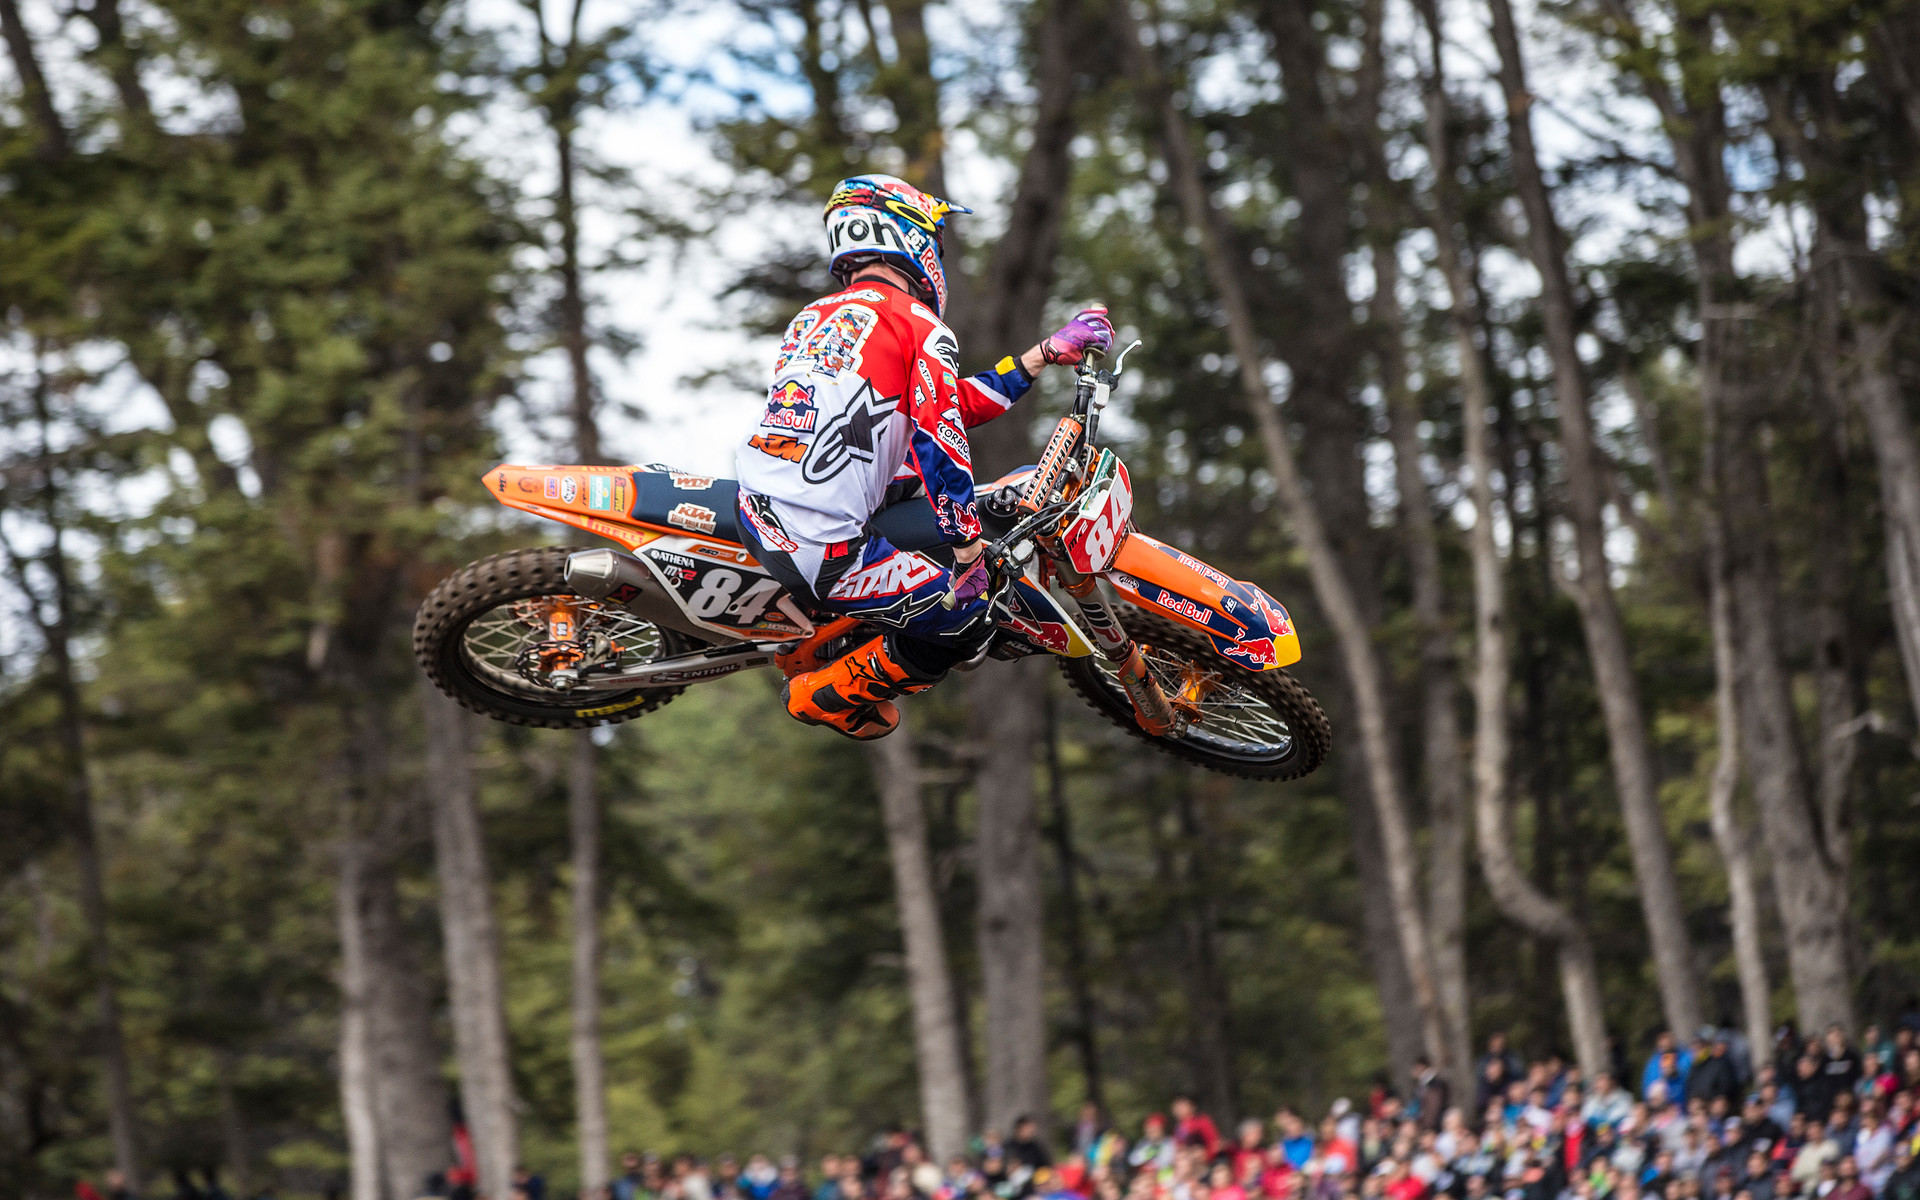 142255_Jeffrey Herlings KTM 250 SX-F Neuquen 2016